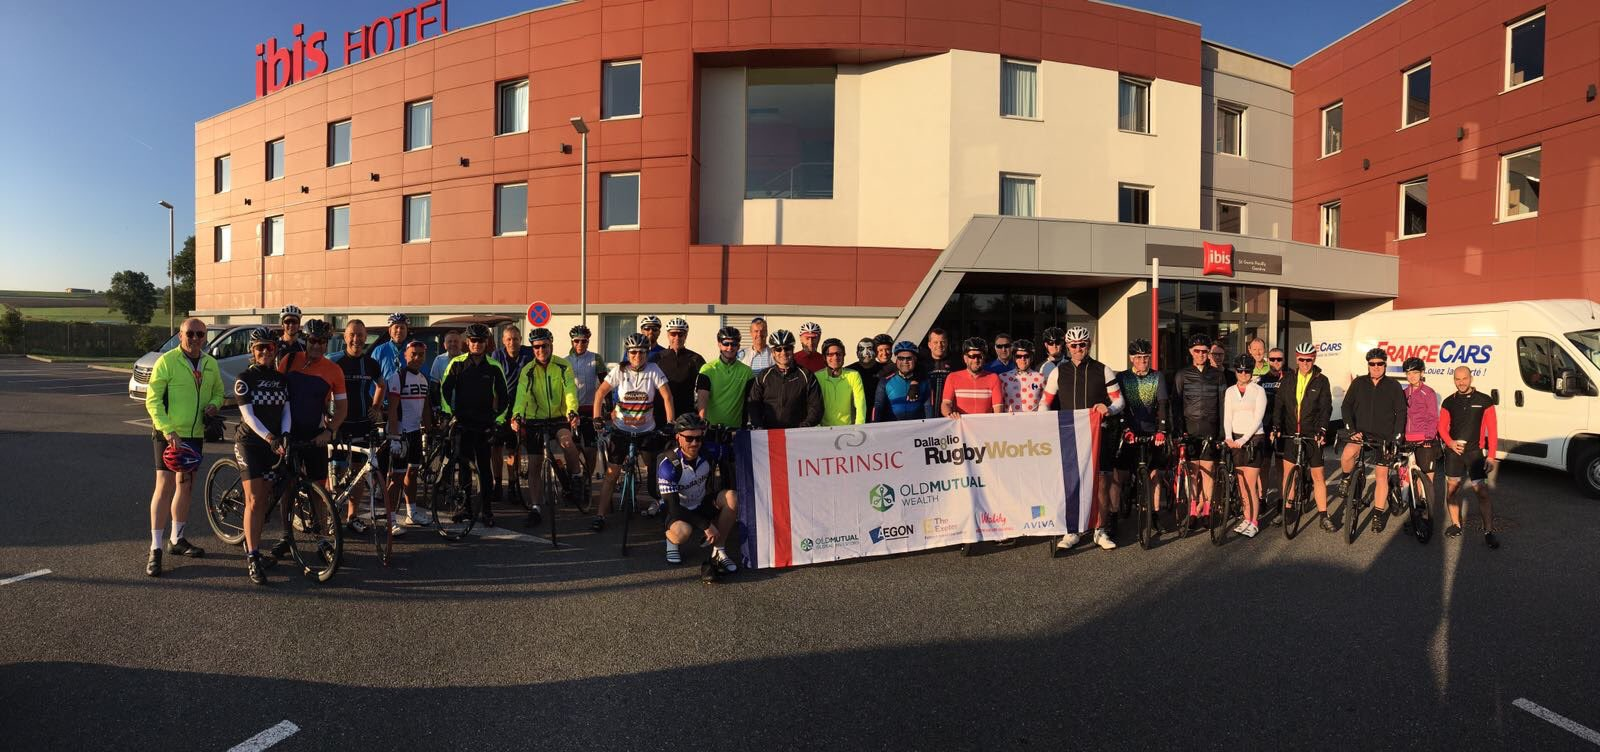 They're ready for the off! Nearly 100km today on day 1 of #IntrinsicRide Good luck! https://t.co/MLt6M6NgrG